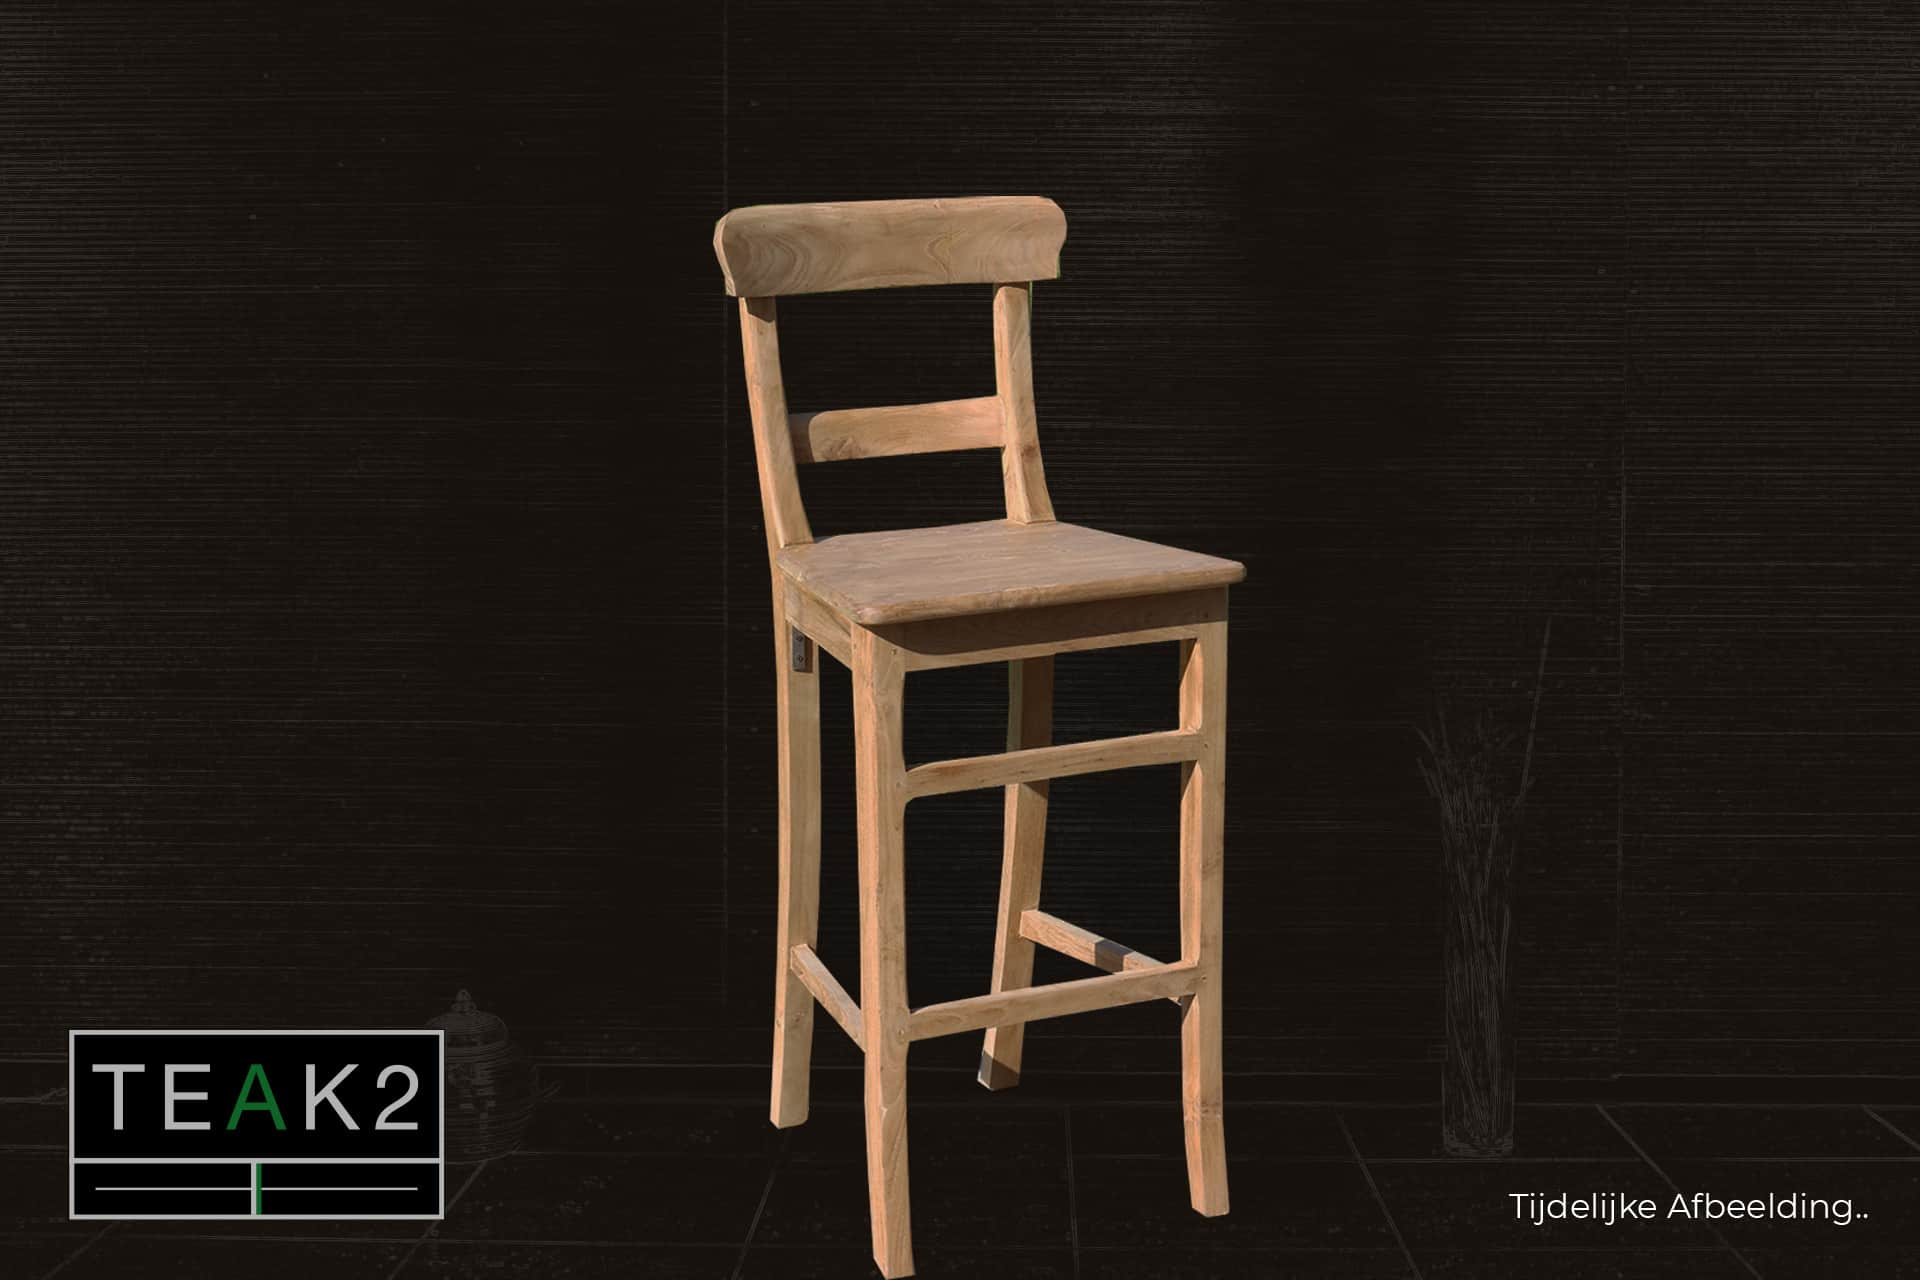 Bar stool Teak Kursi | modern wooden bar stool in smooth teak, comfortable bar stool teak. Wooden bar stool, solid, solid construction & comfortable seating - TEAK2.